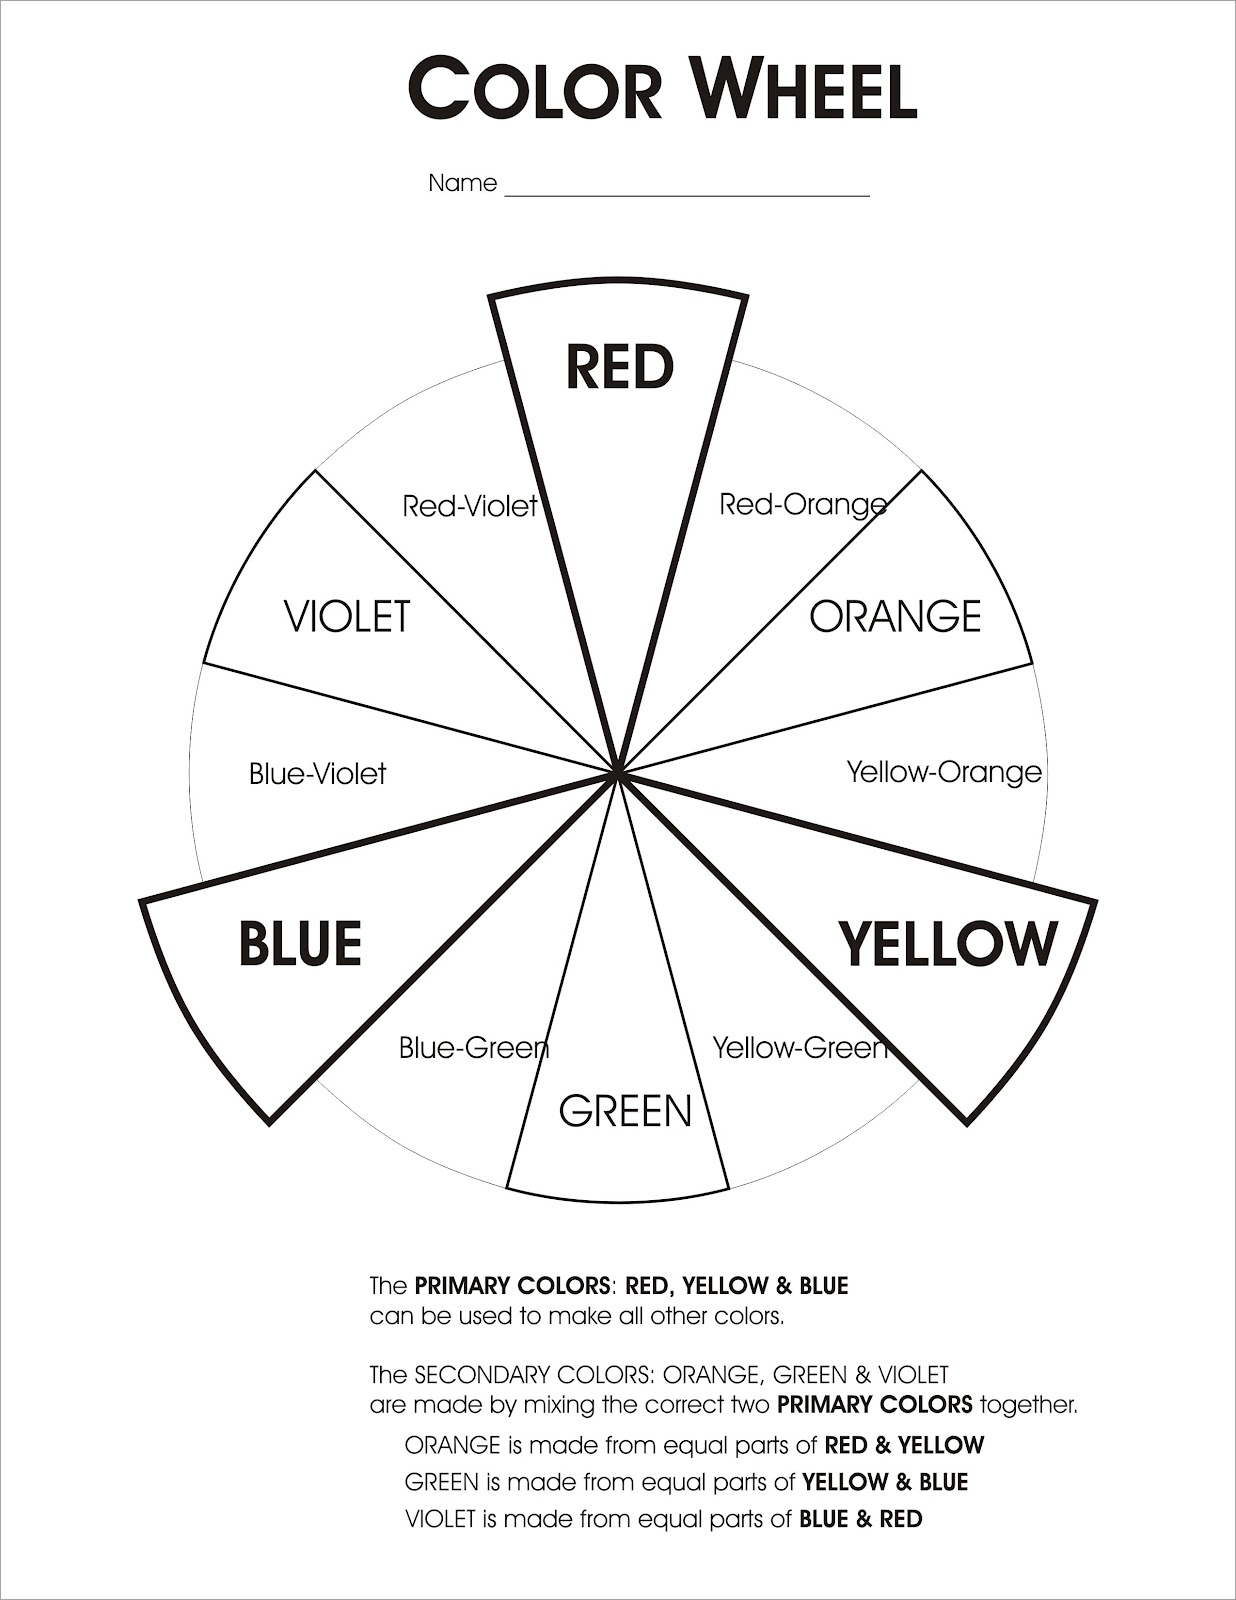 Color theory worksheet for kids - 61 Best Images About Art Color Wheel And Elements Of Art On Pinterest Art Elements Umbrellas And Color Wheels